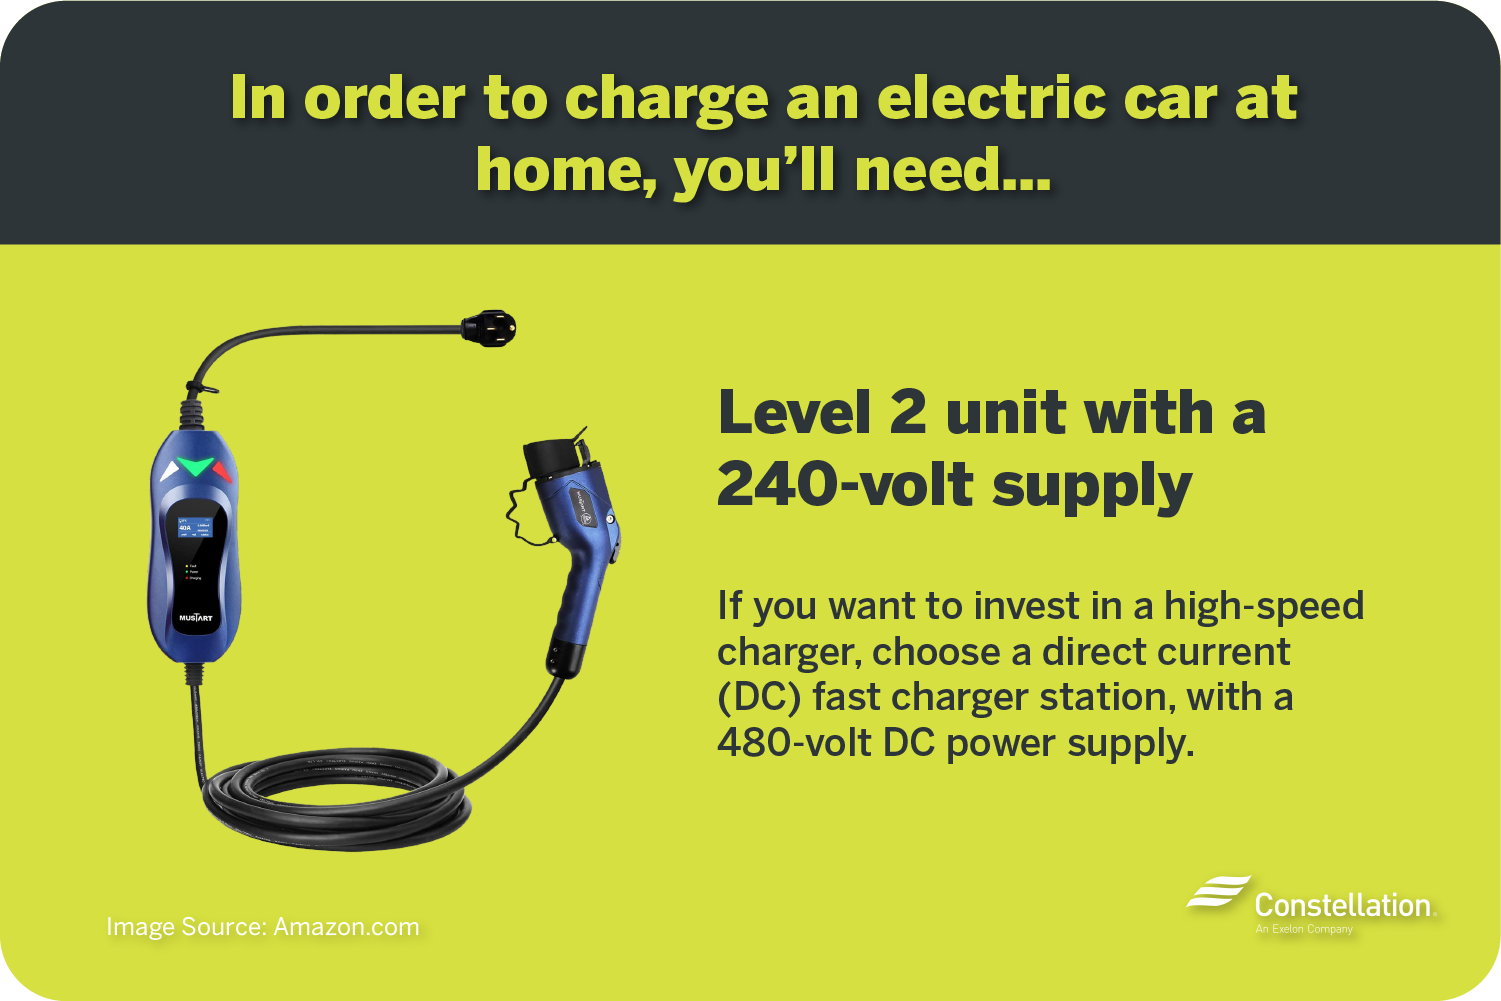 Level 2 Unit to charge electric car at home